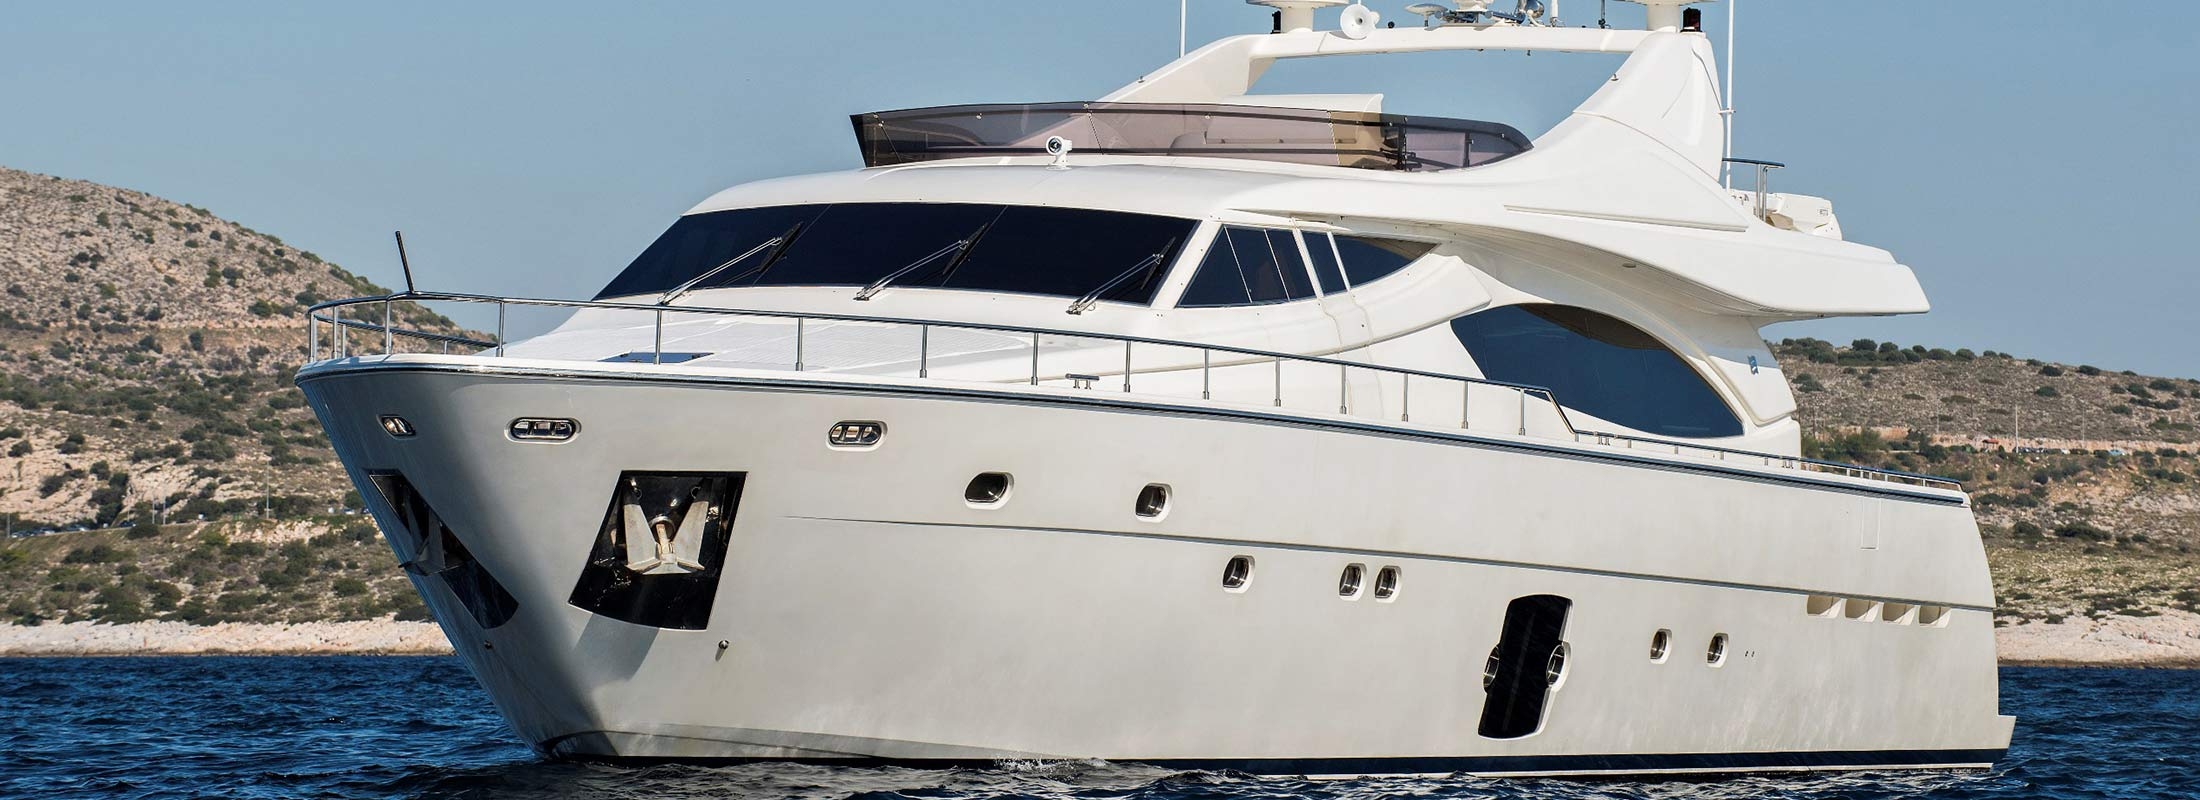 Day Off Motor Yacht for Charter Mediterranean slider 3